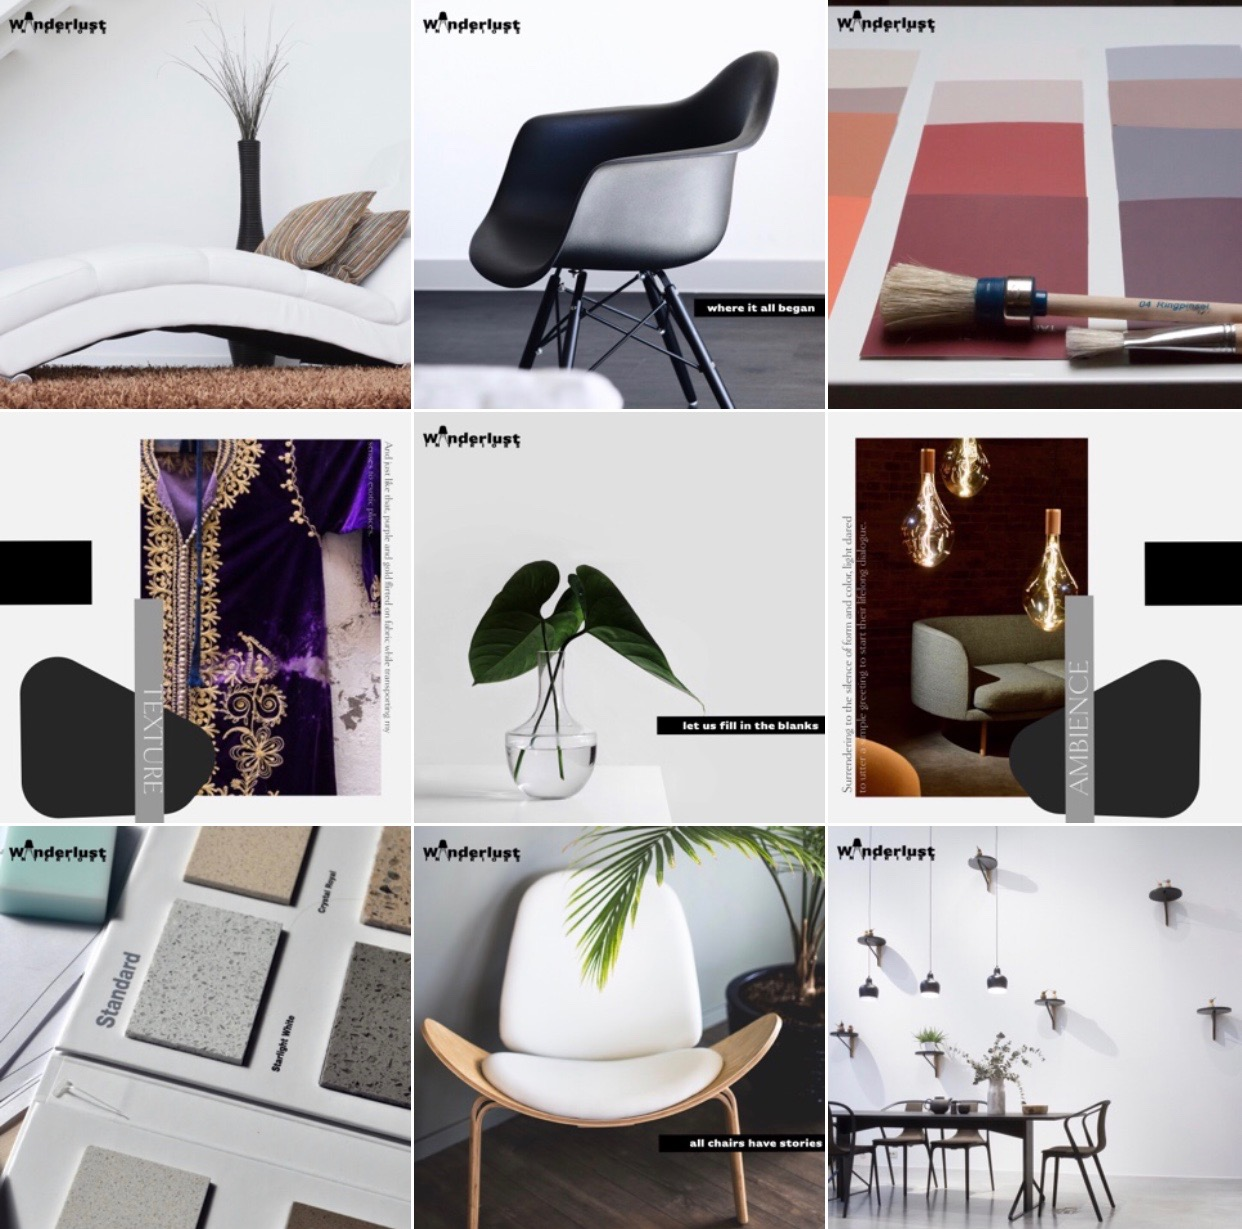 Wanderlust Interiors, Instagram Grid, interior design brand, Optimal Octopus